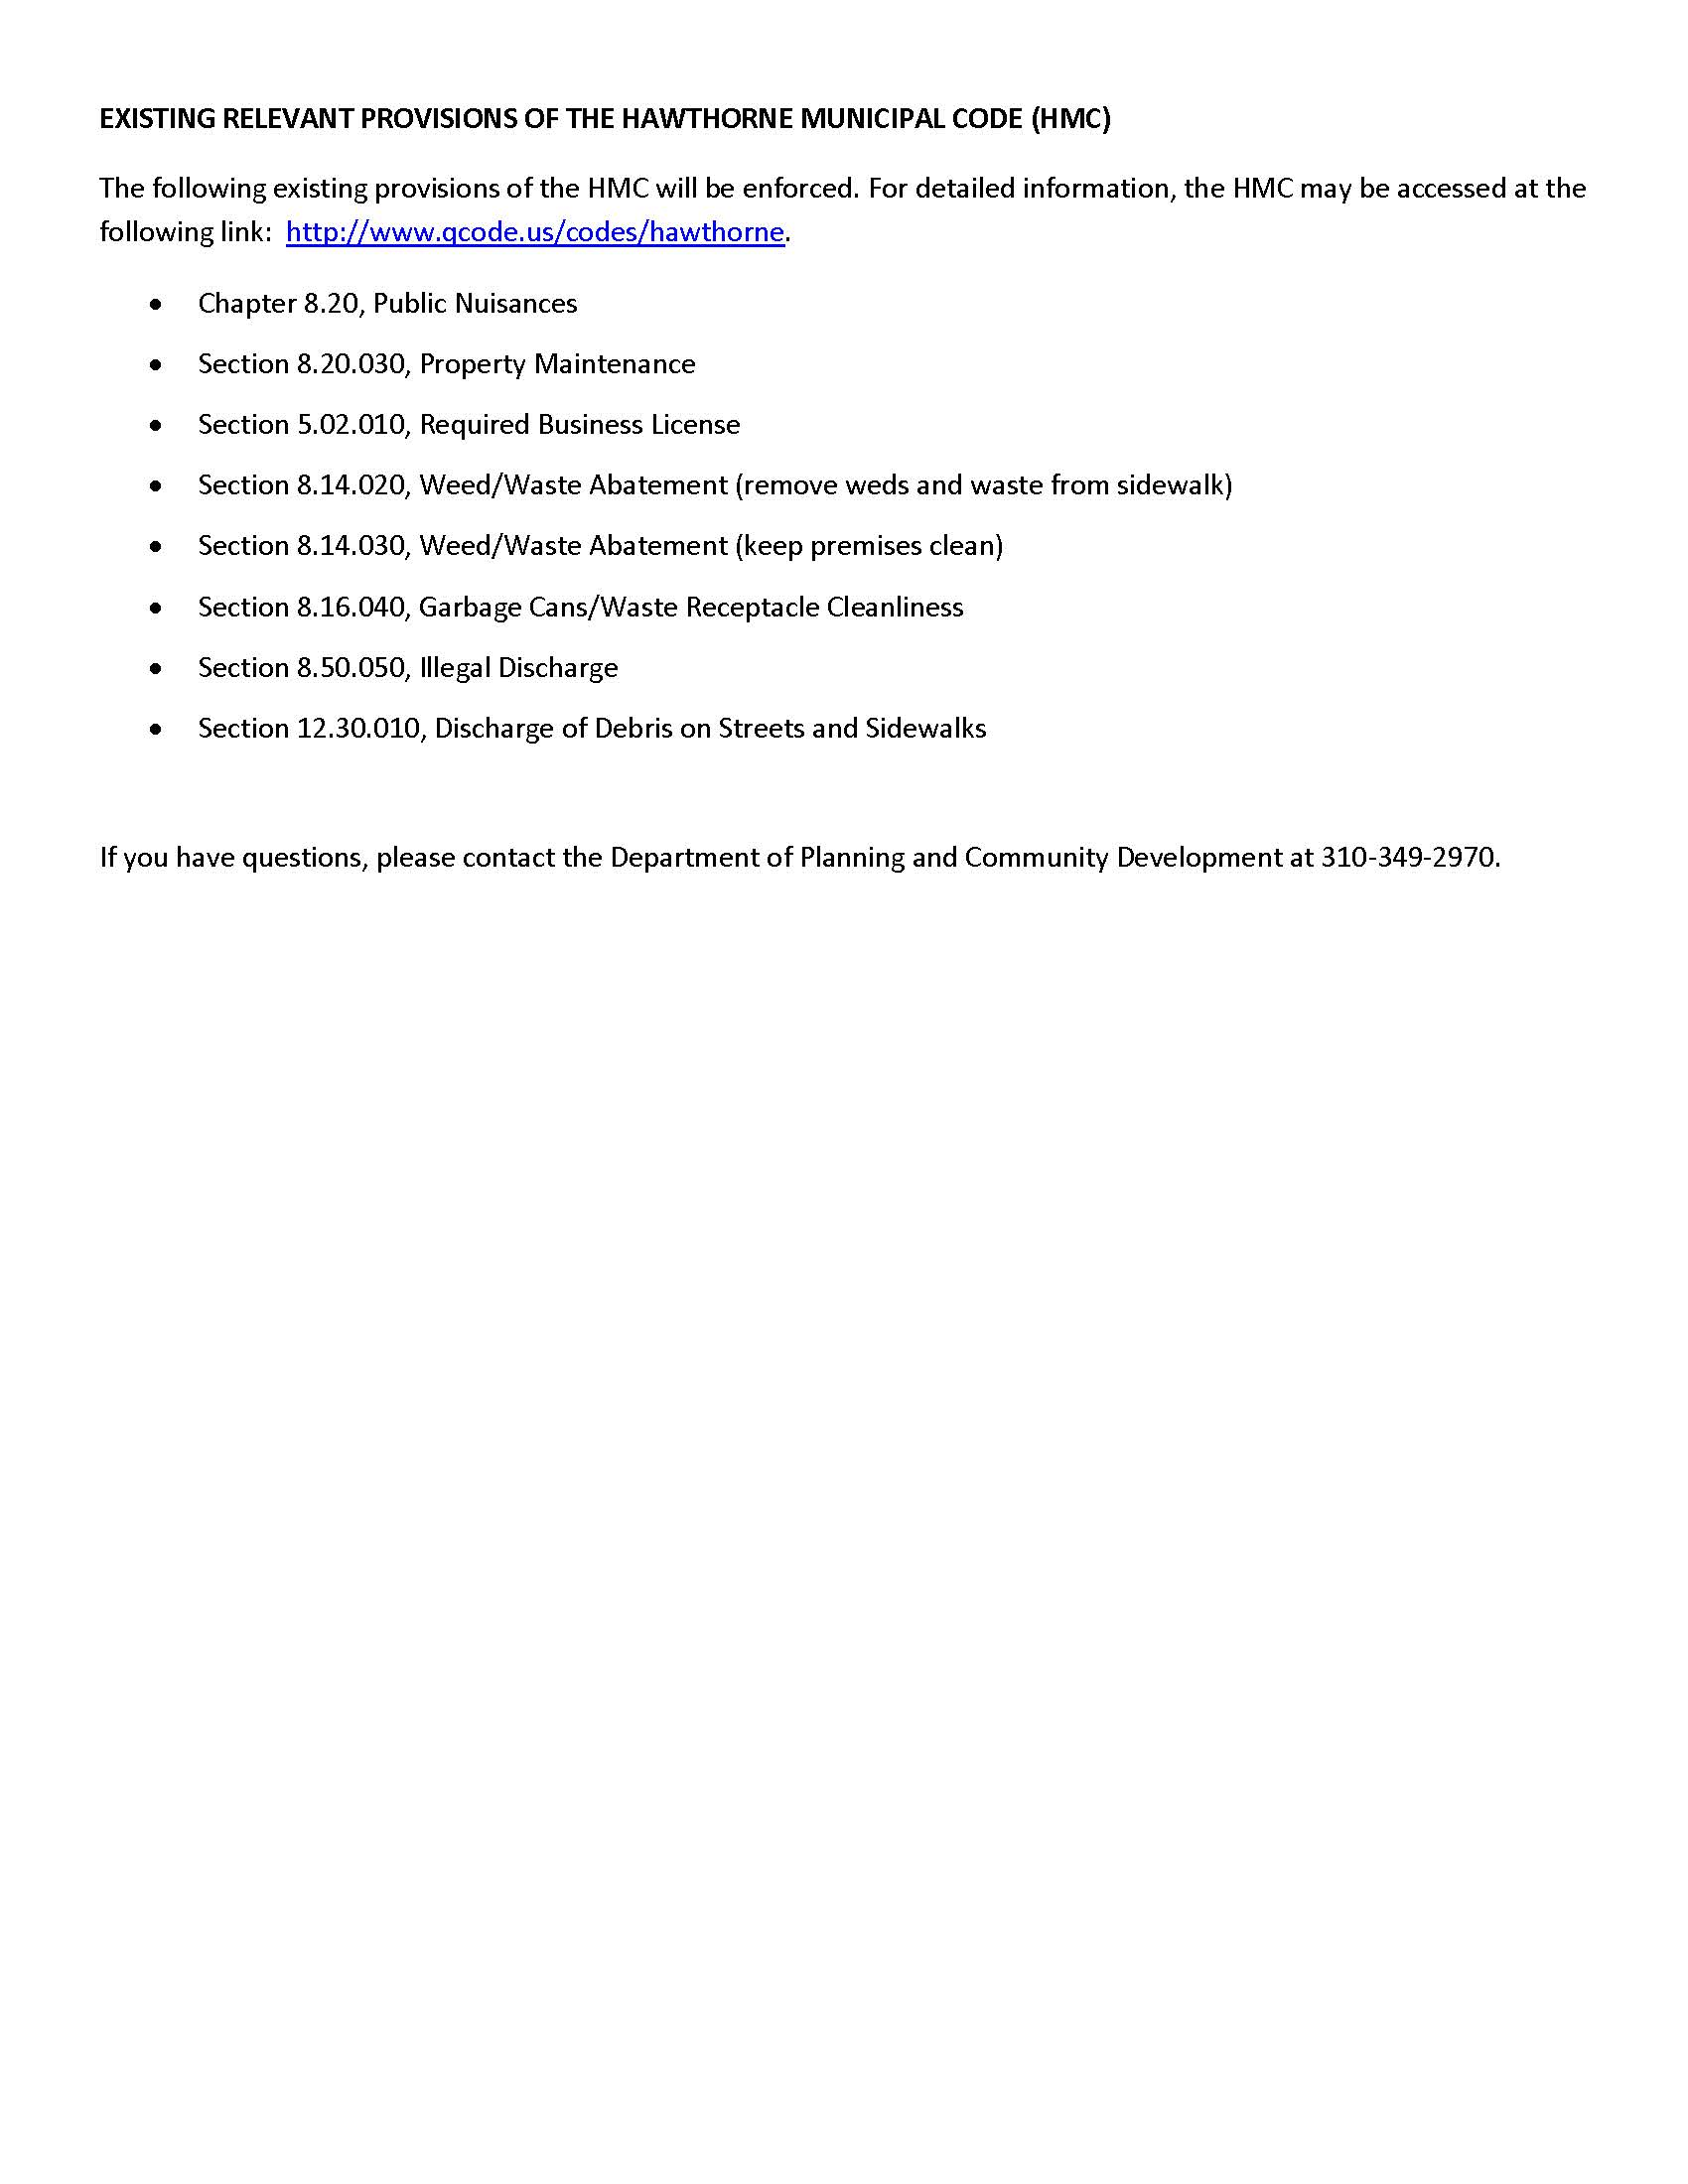 Commercial Cleaning Requirment - pg2